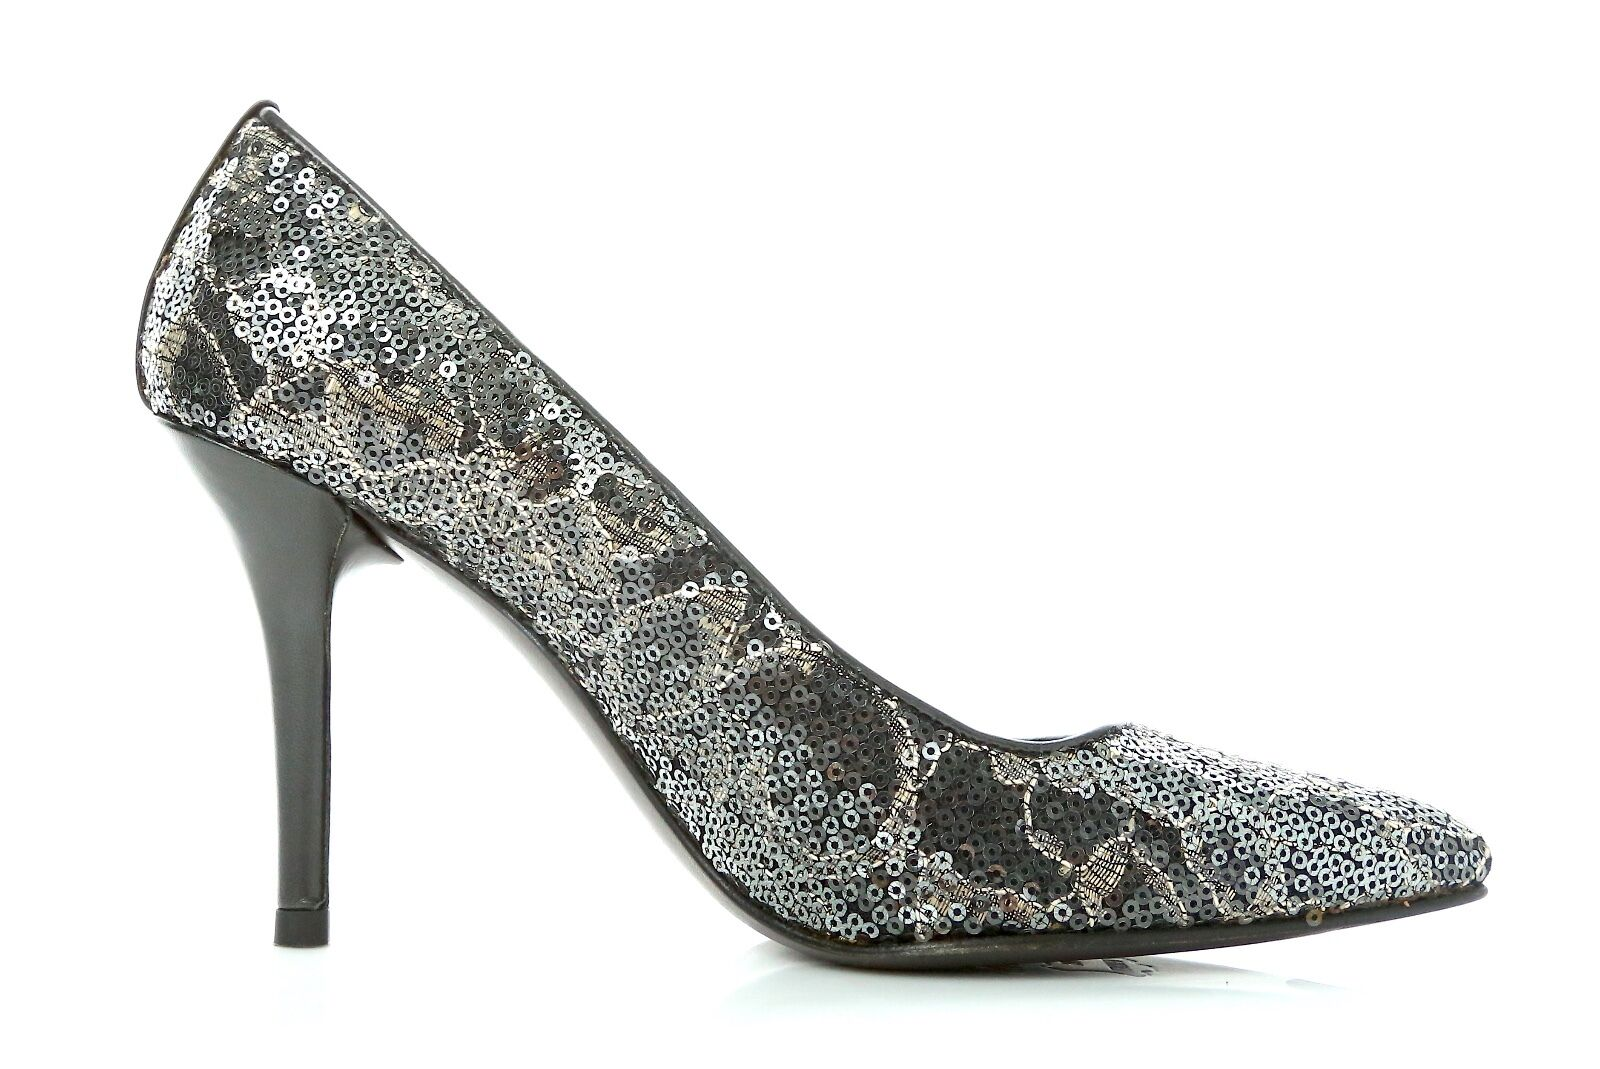 Stuart Weitzman Silver Sequin Volcanic Lace Lace Lace Pipepower Pointy-Toe Pumps Size 6.5 24ab26